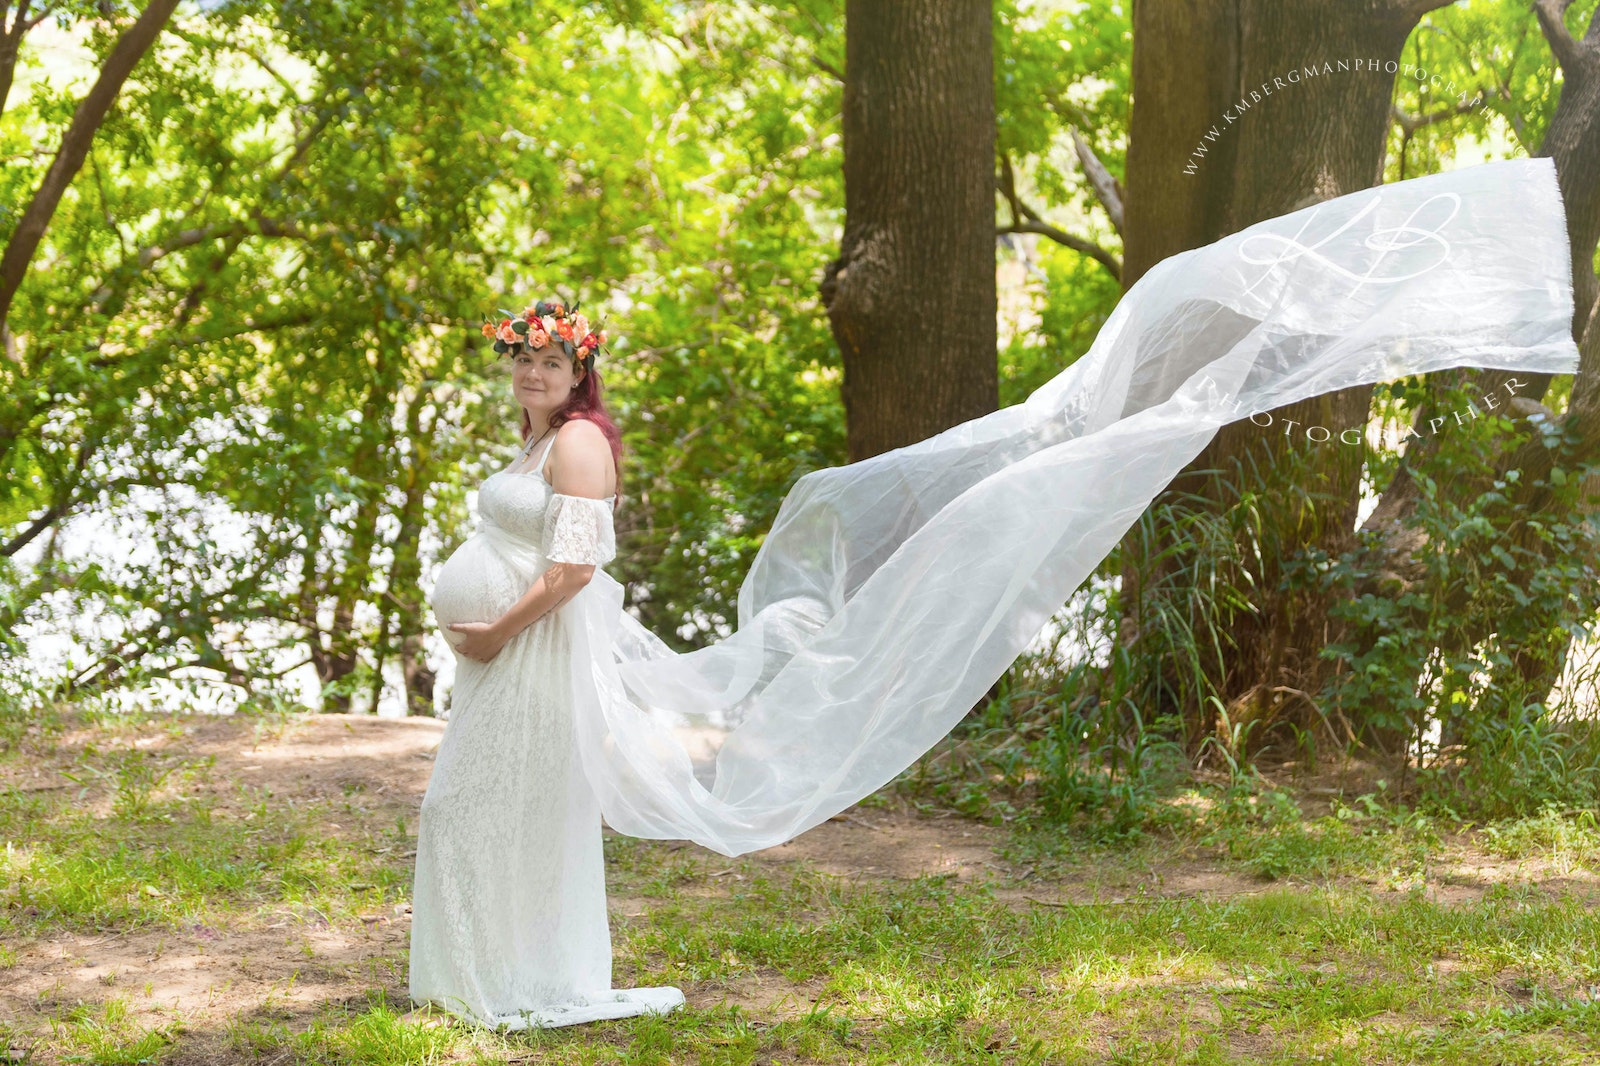 Maternity Location - Gorgeous Maternity session right here in the heart of Logan City